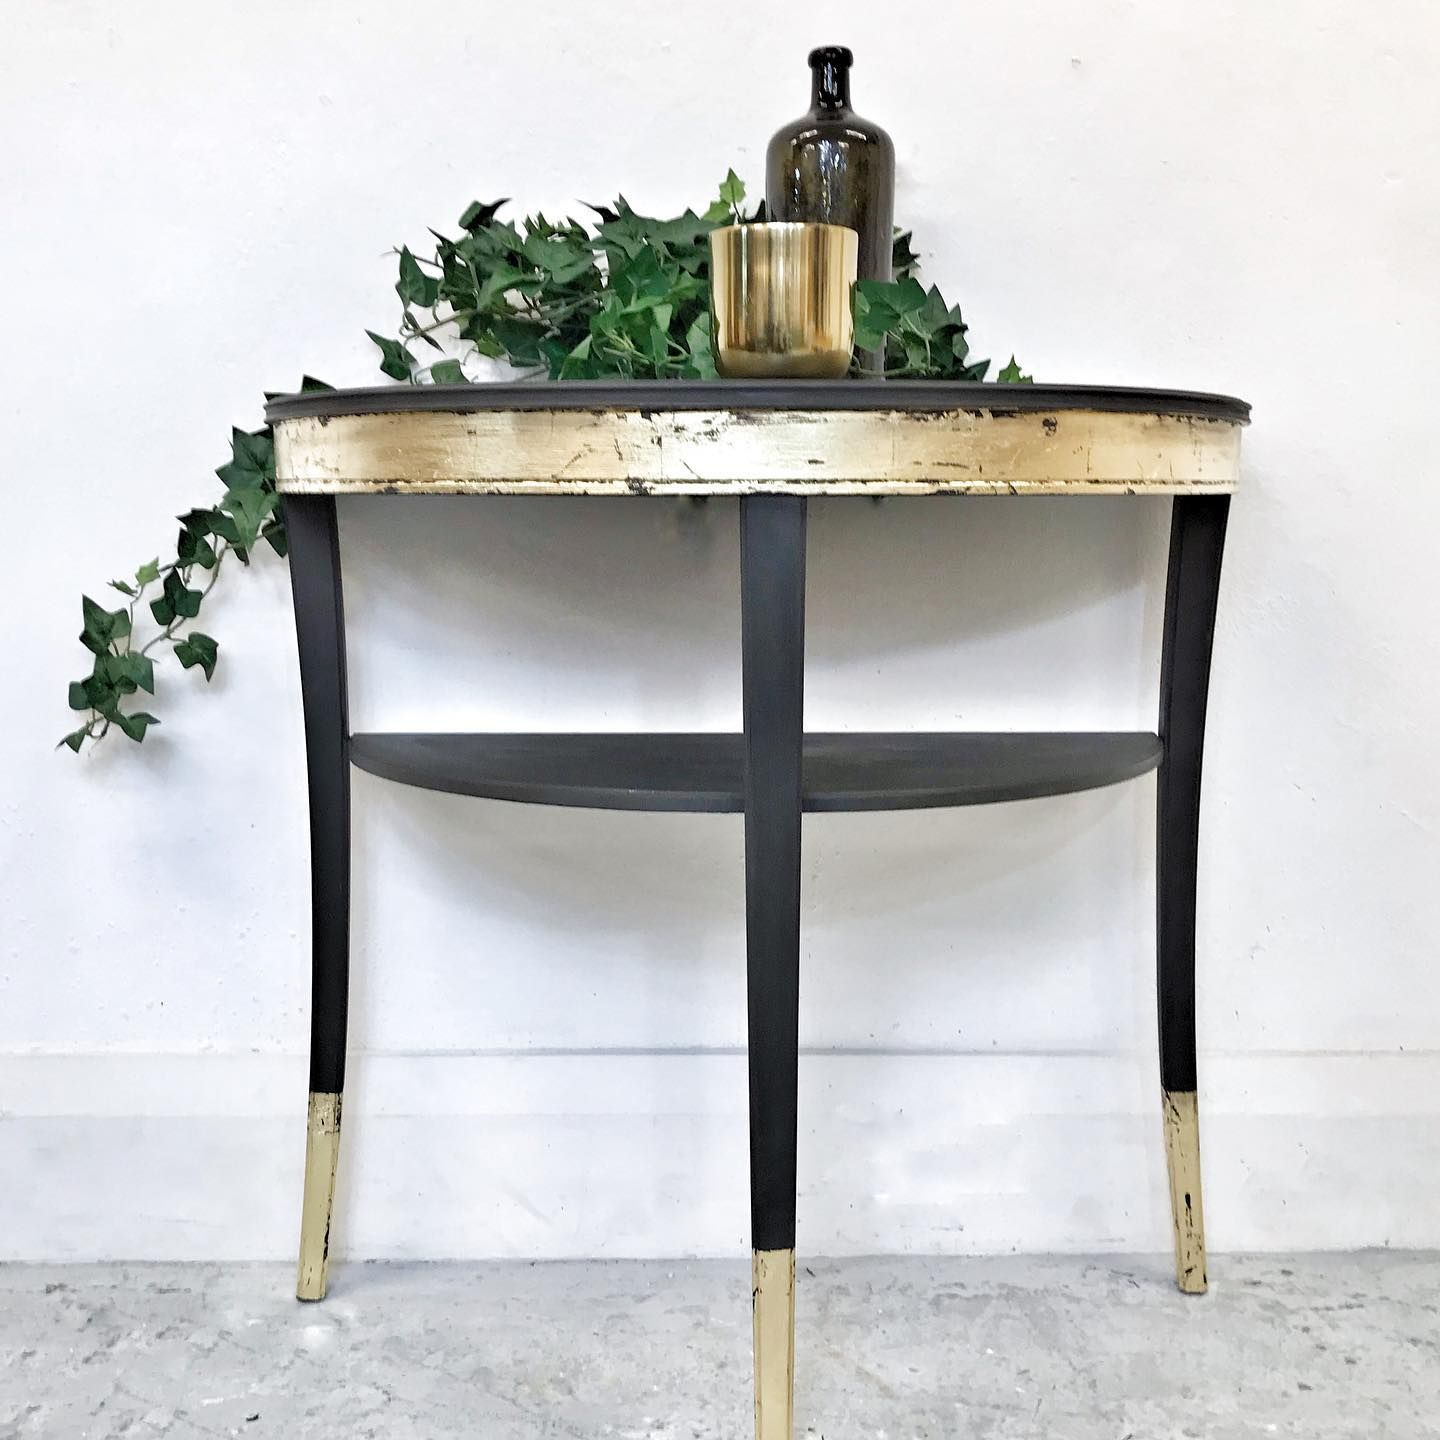 Legate furniture – hand painted half moon console table with shelf in Graphite and Gold Leaf   nuMONDAY